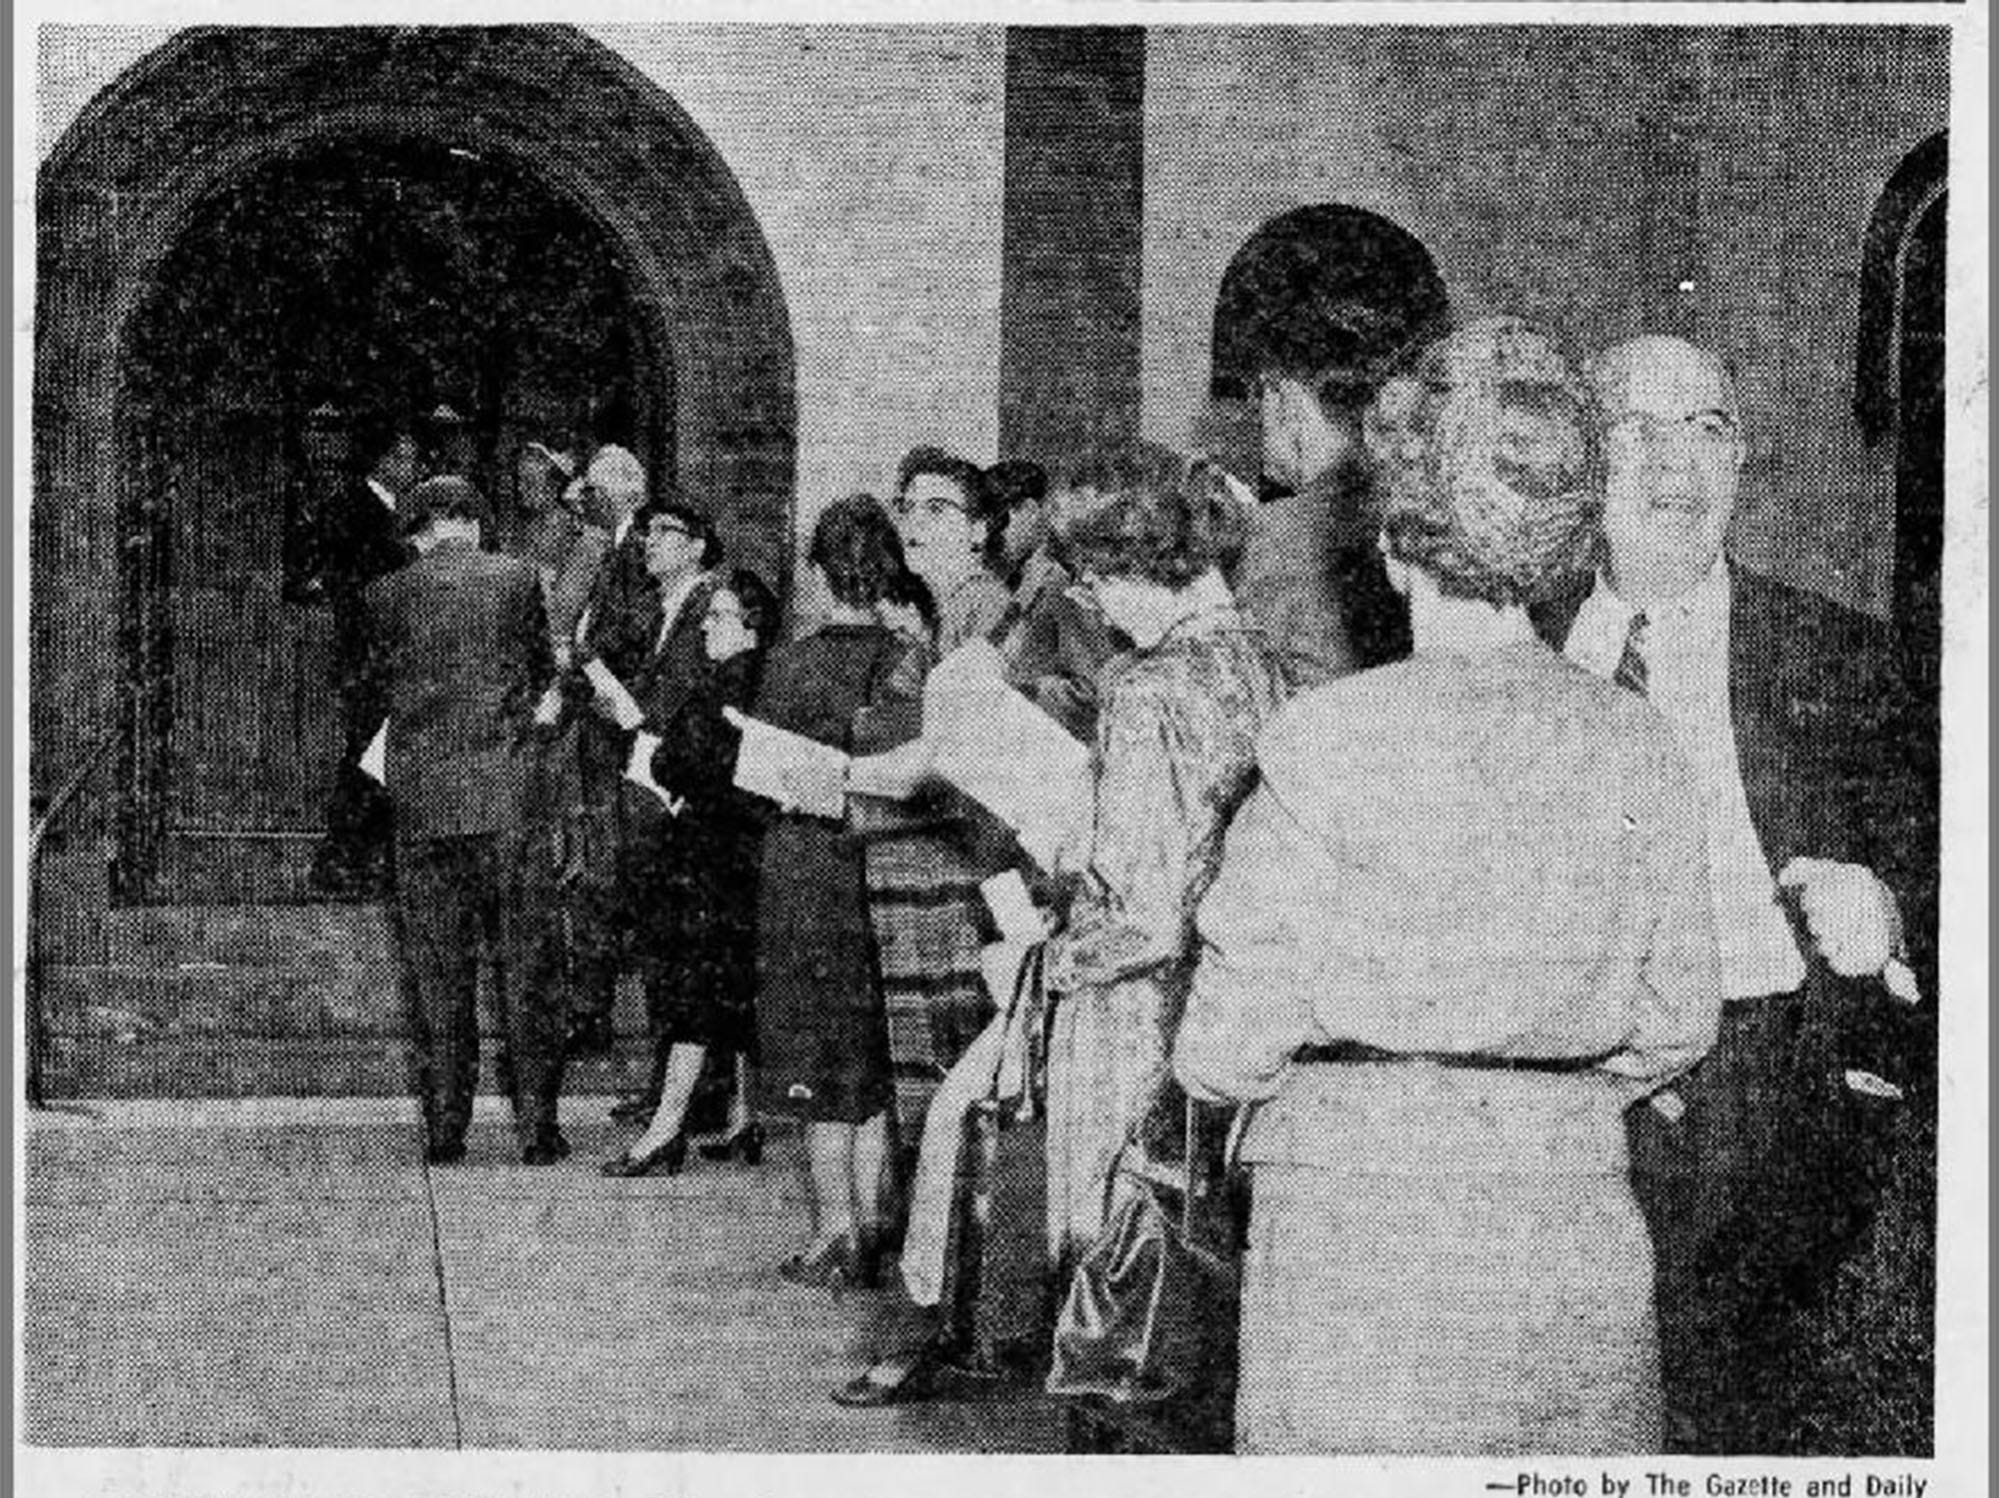 A photo from the Gazette and Daily, April 16, 1960.